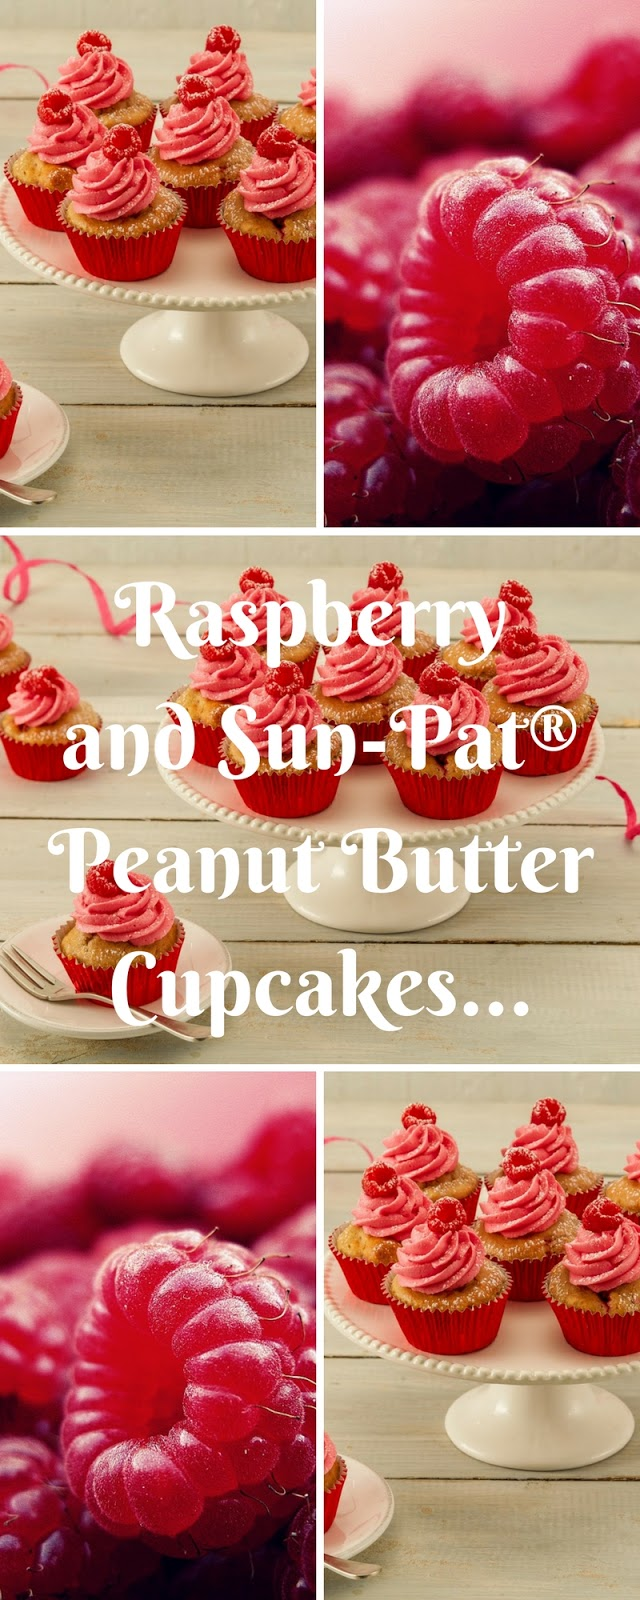 Raspberry And Sun-Pat® Peanut Butter Cupcakes